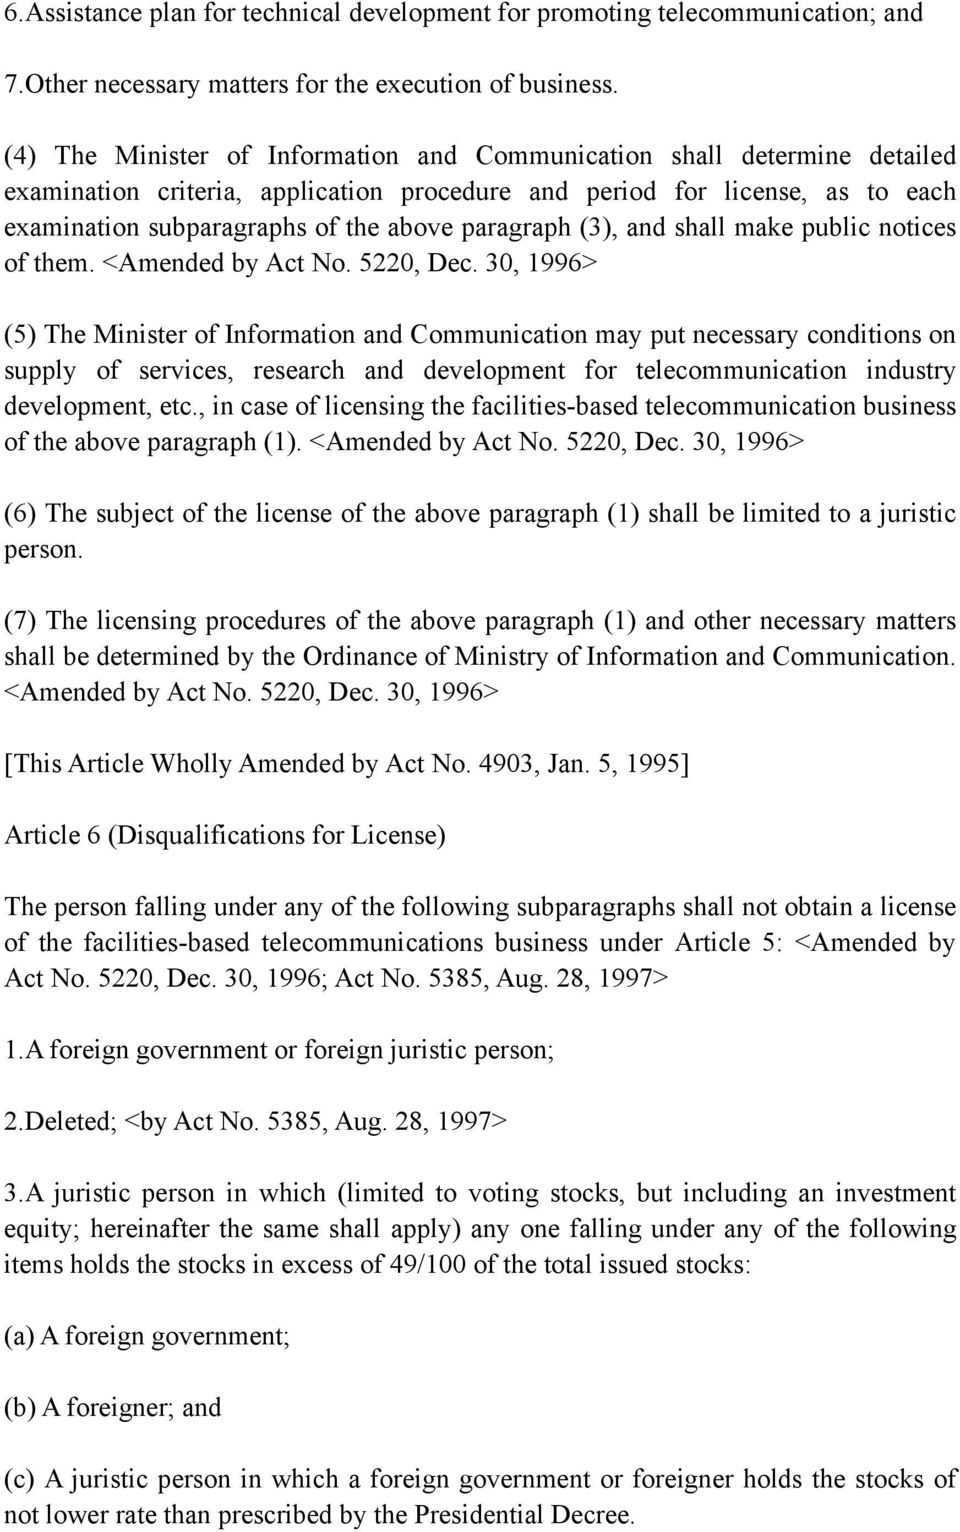 paragraph (3), and shall make public notices of them. <Amended by Act No. 5220, Dec.